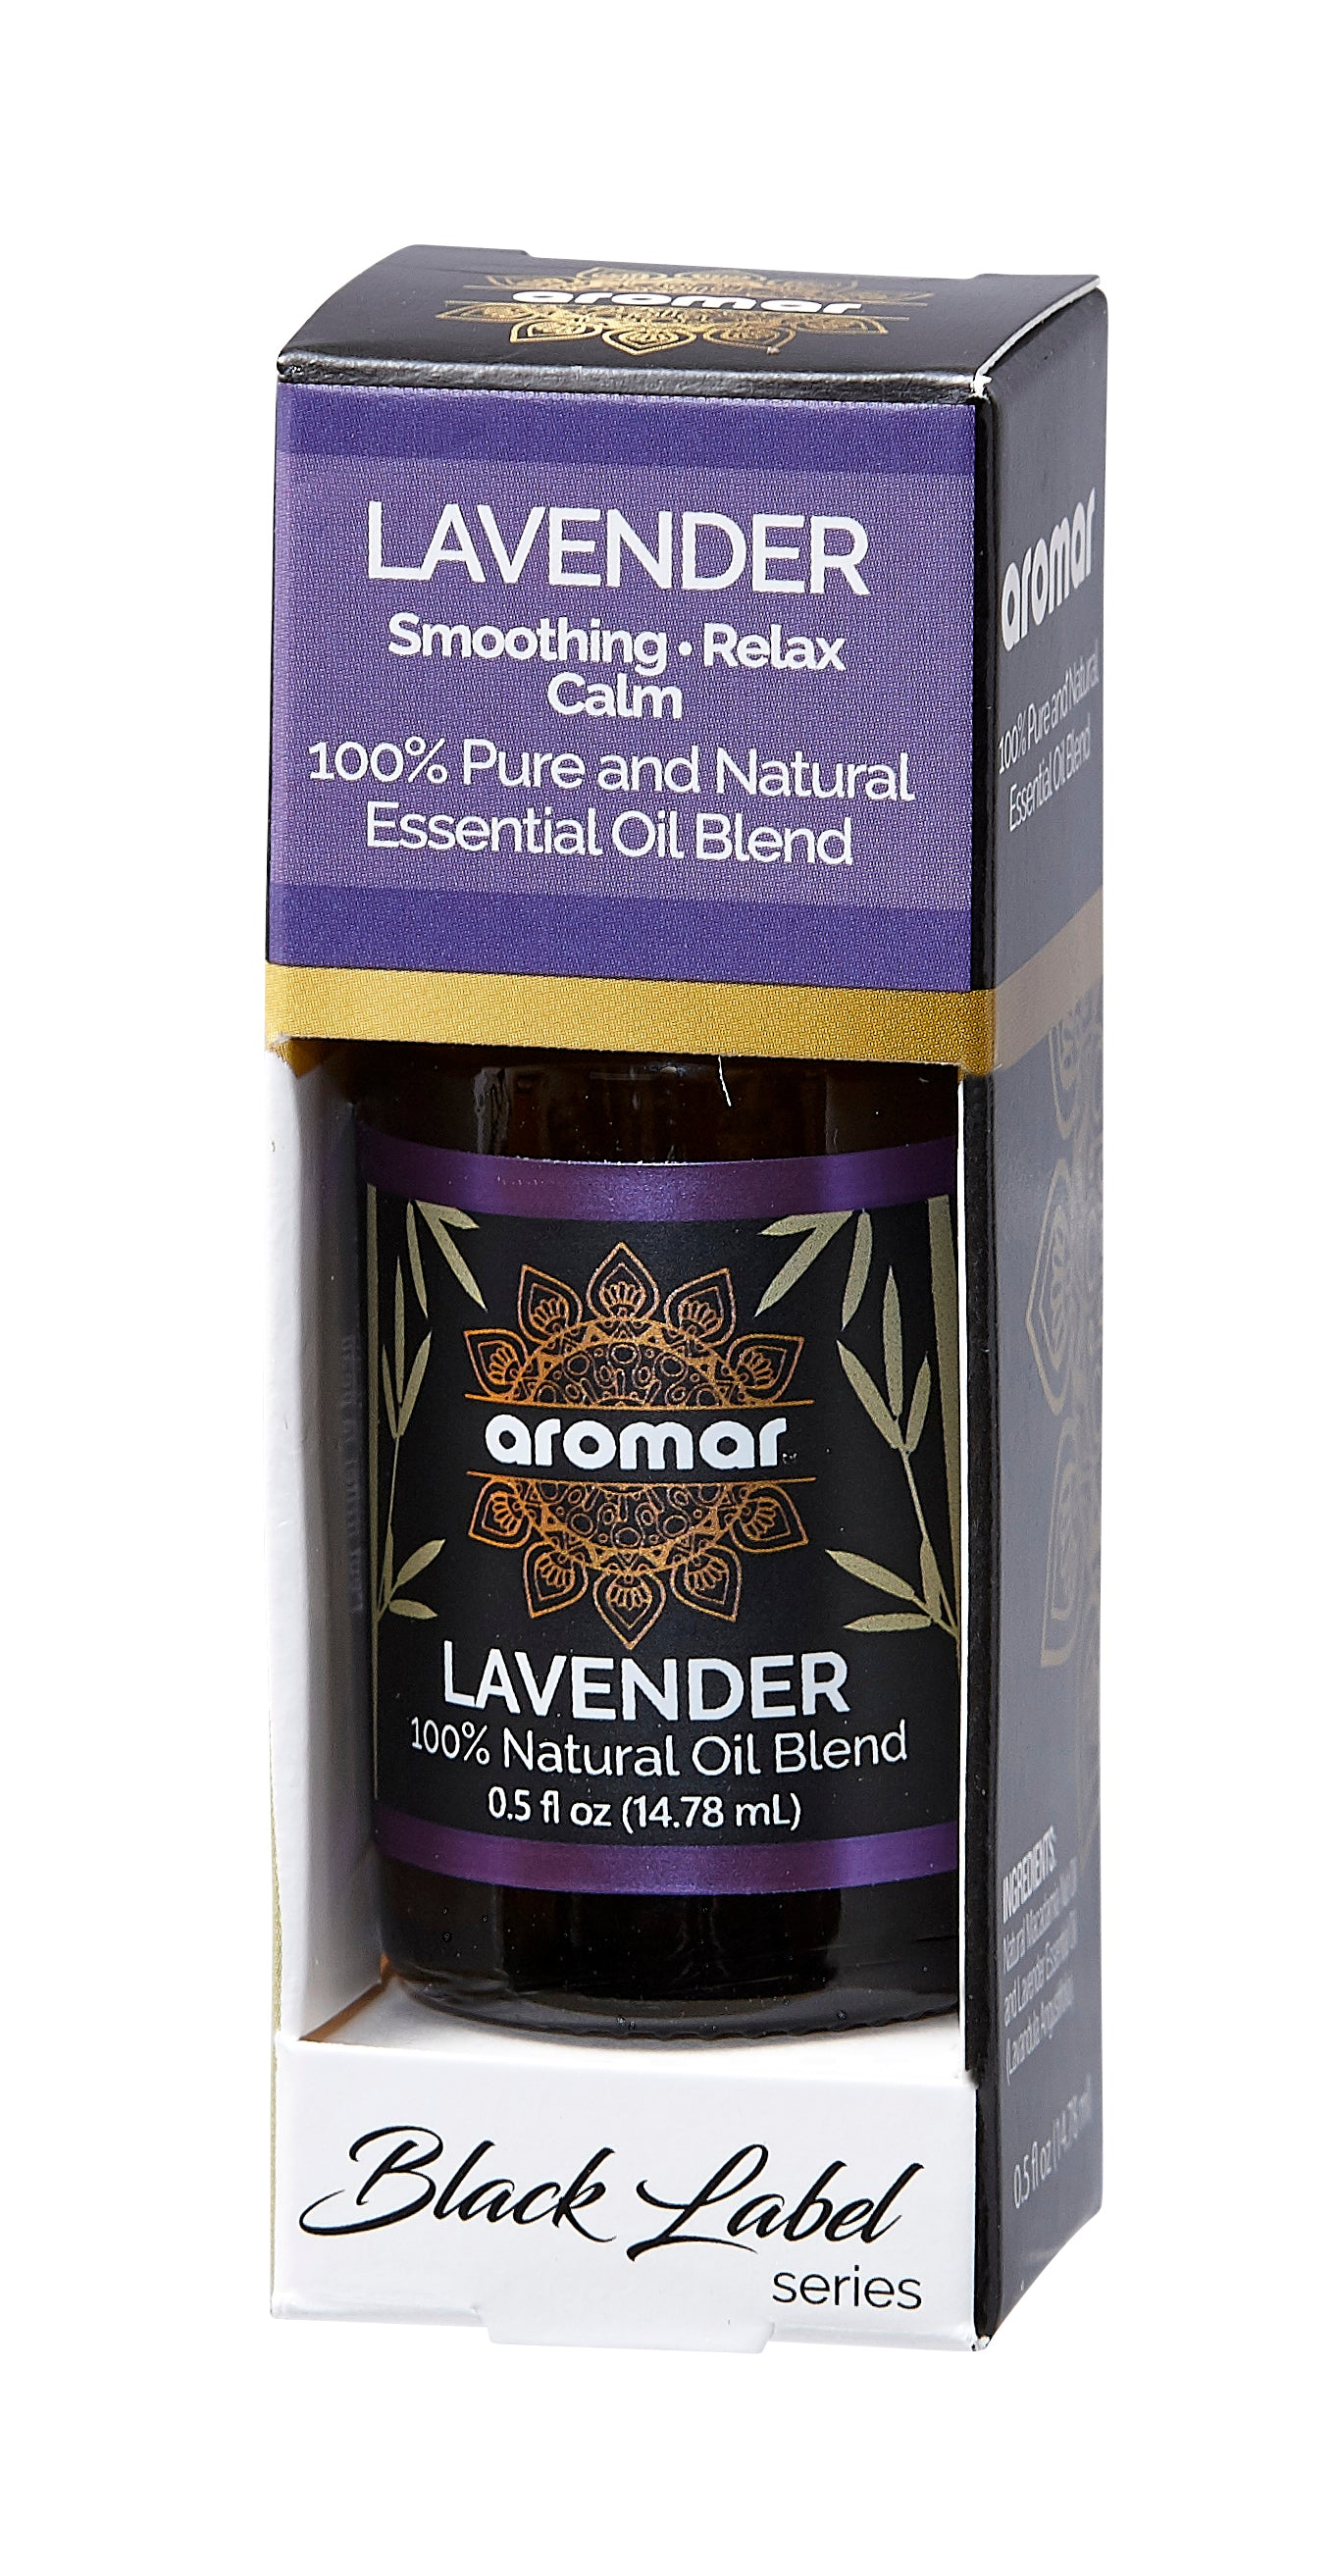 LAVENDER BLACK SERIES ESSENTIALS 0.5 OZ BOX